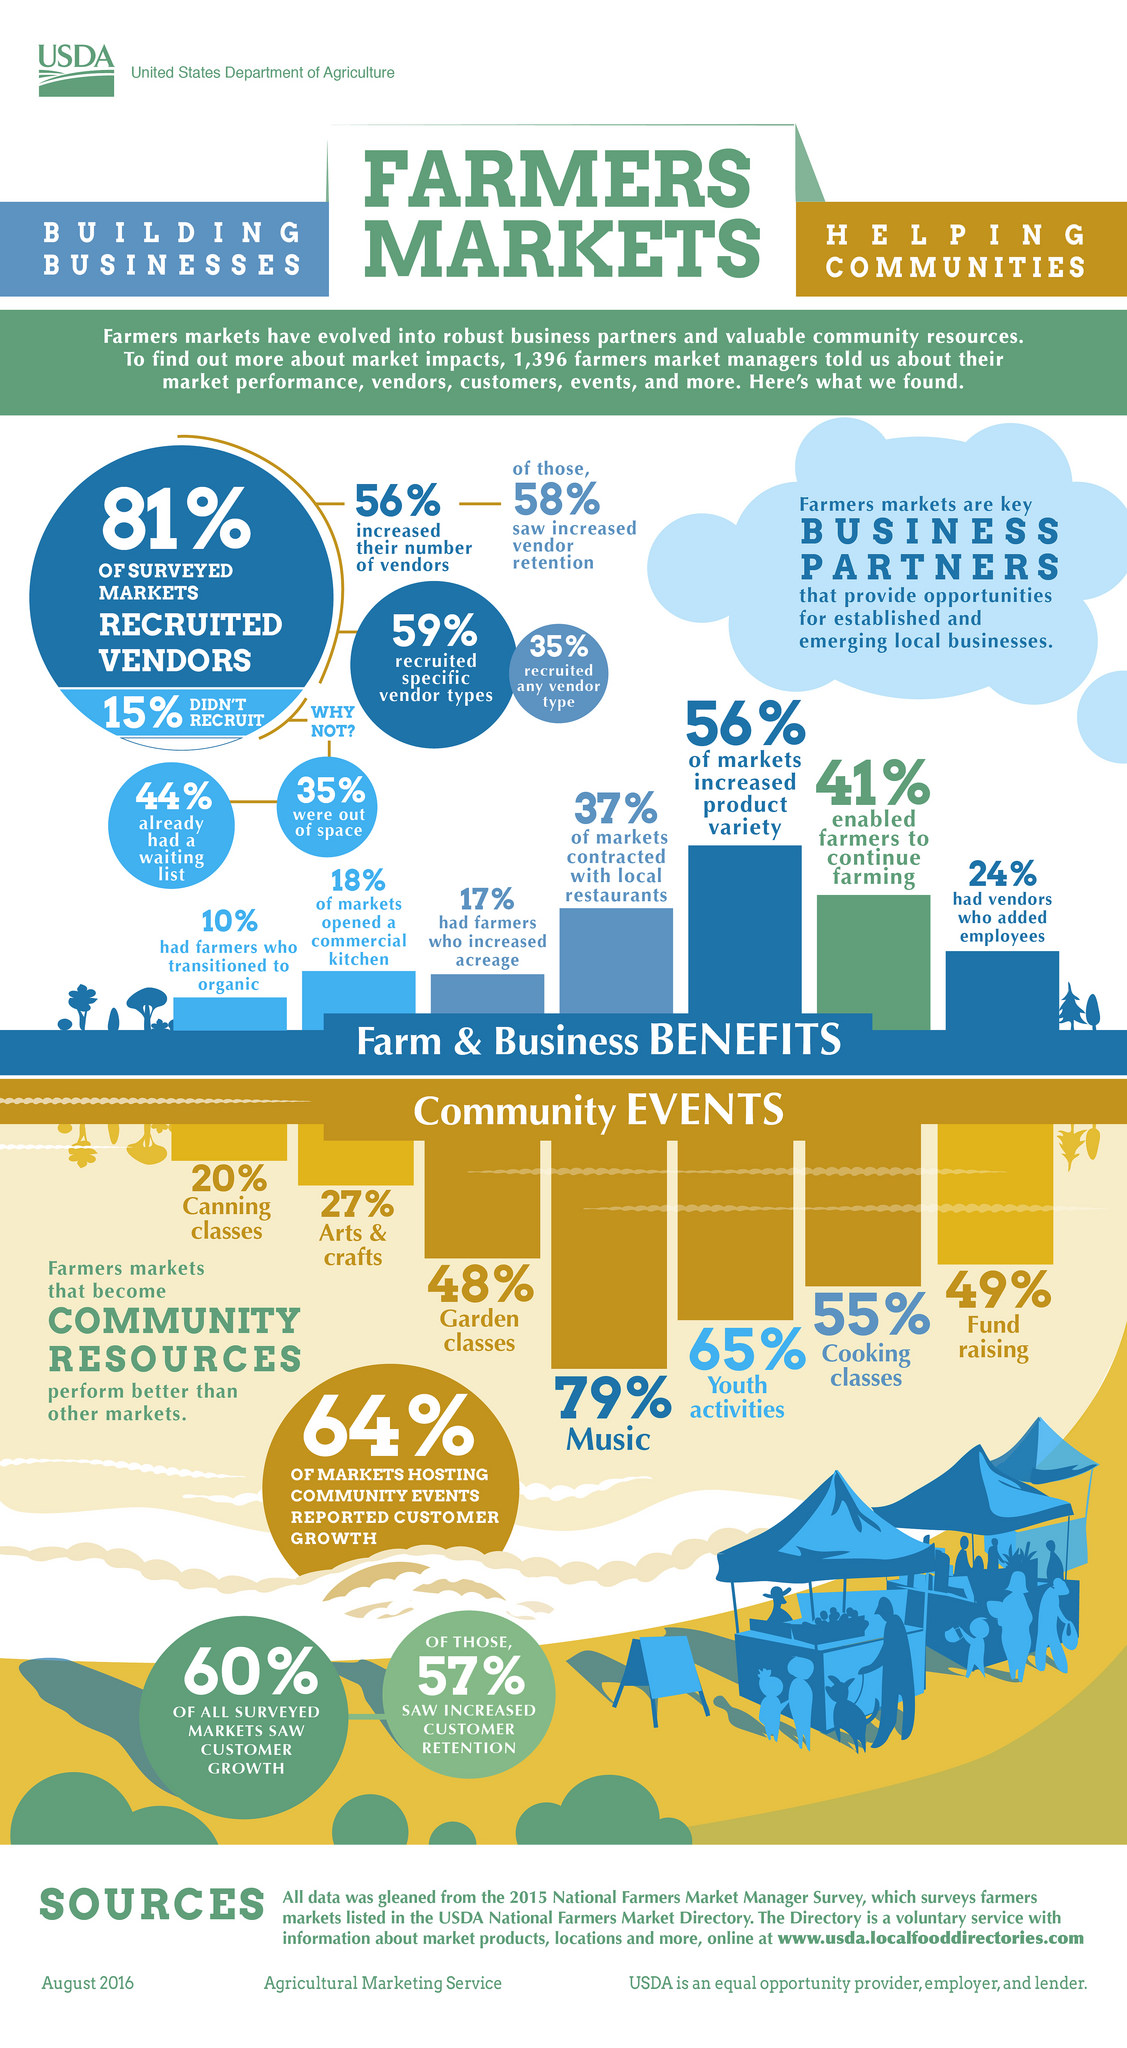 Statistics and facts of farmer markets